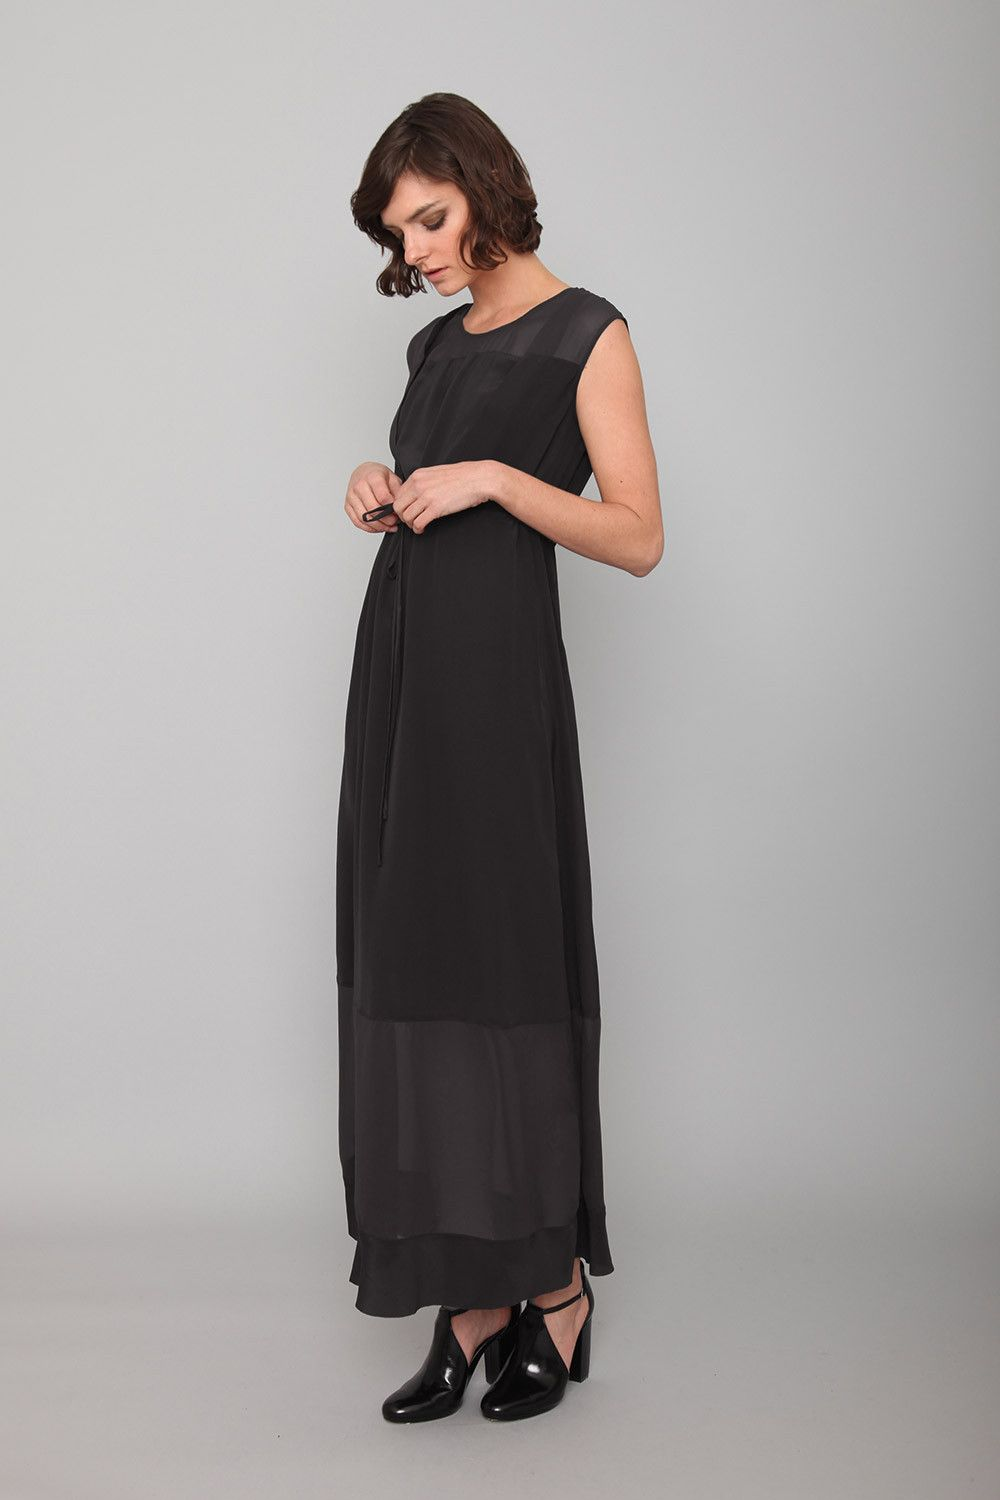 Cupro Sheer Panel Maxi Dress Maxi Dress Dresses Dresses With Sleeves